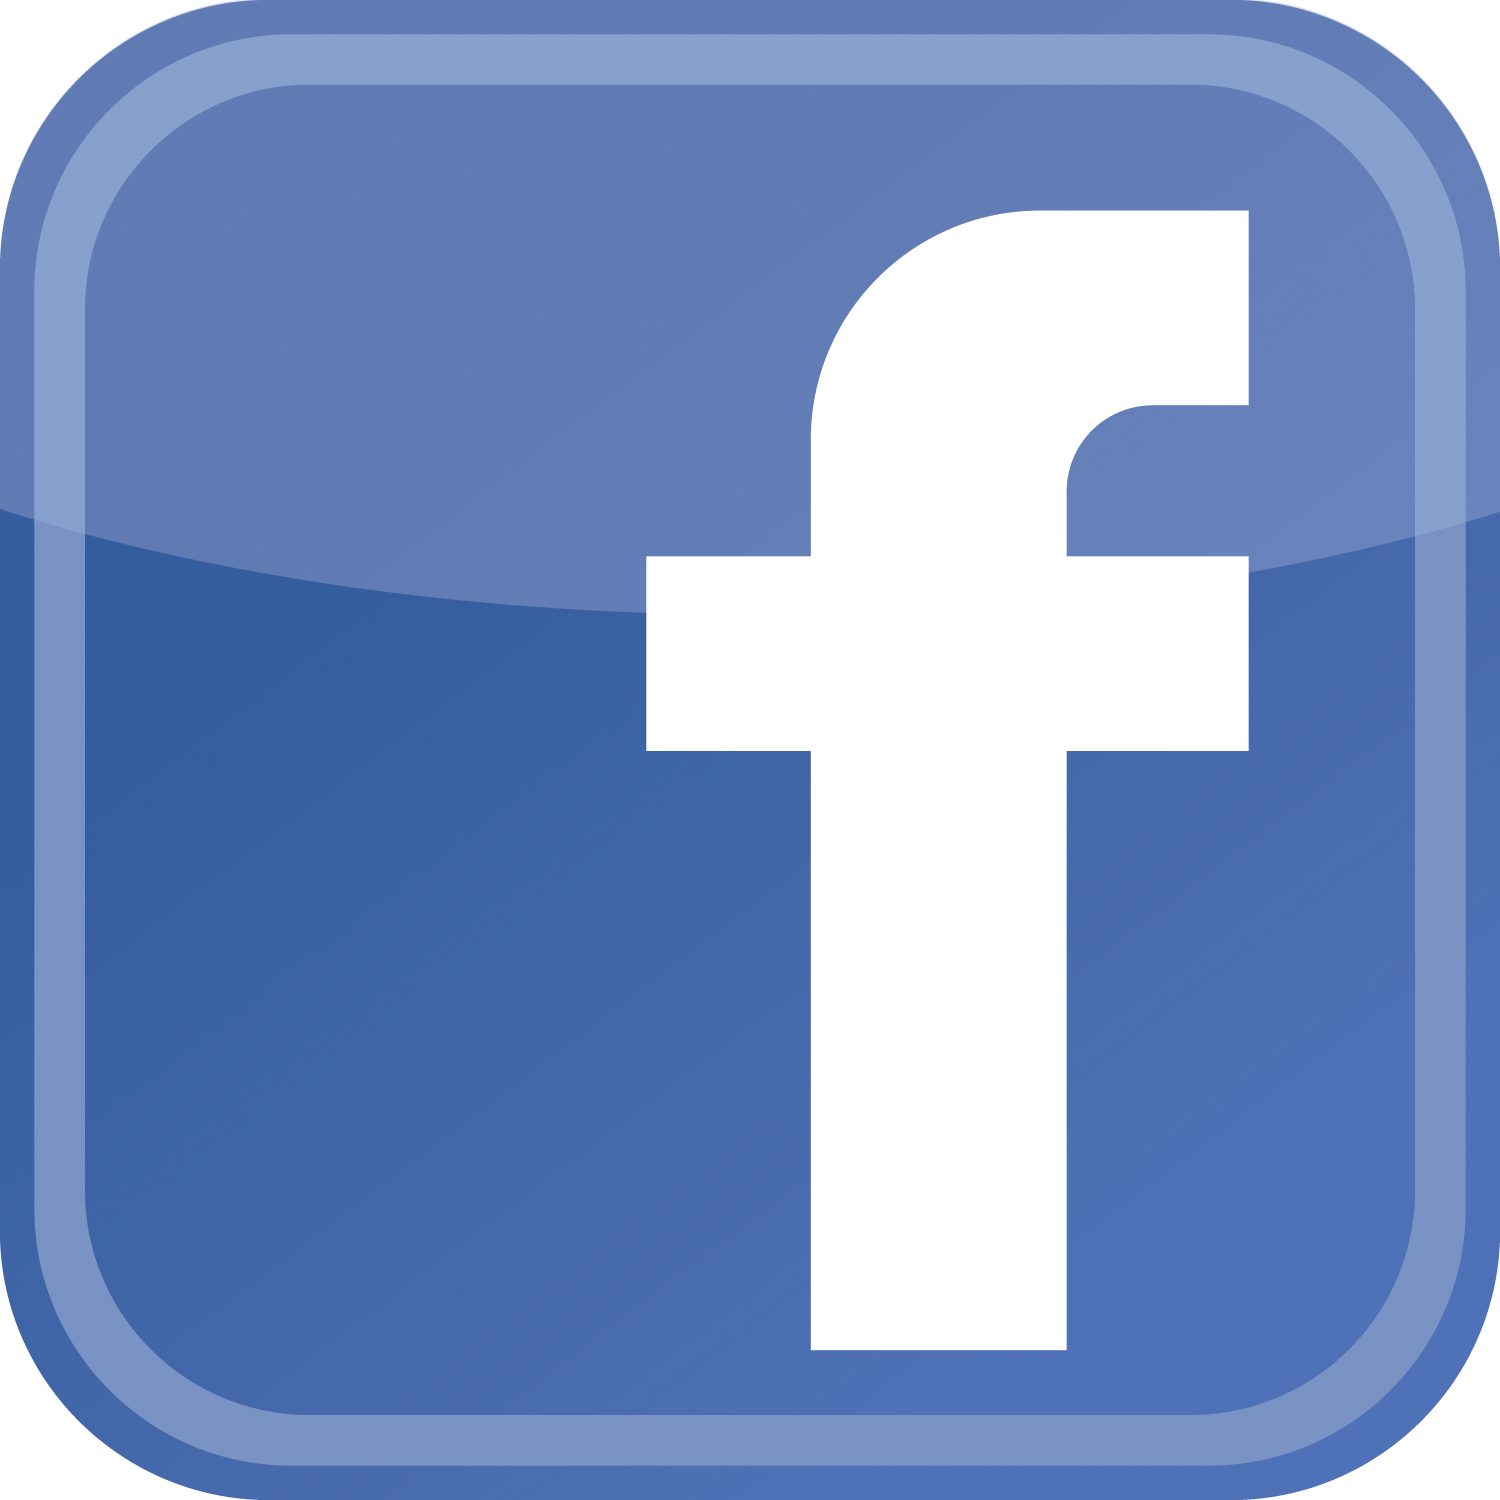 tl_files/brueck-auf_files/images/Transparent-Facebook-Logo-Icon.png